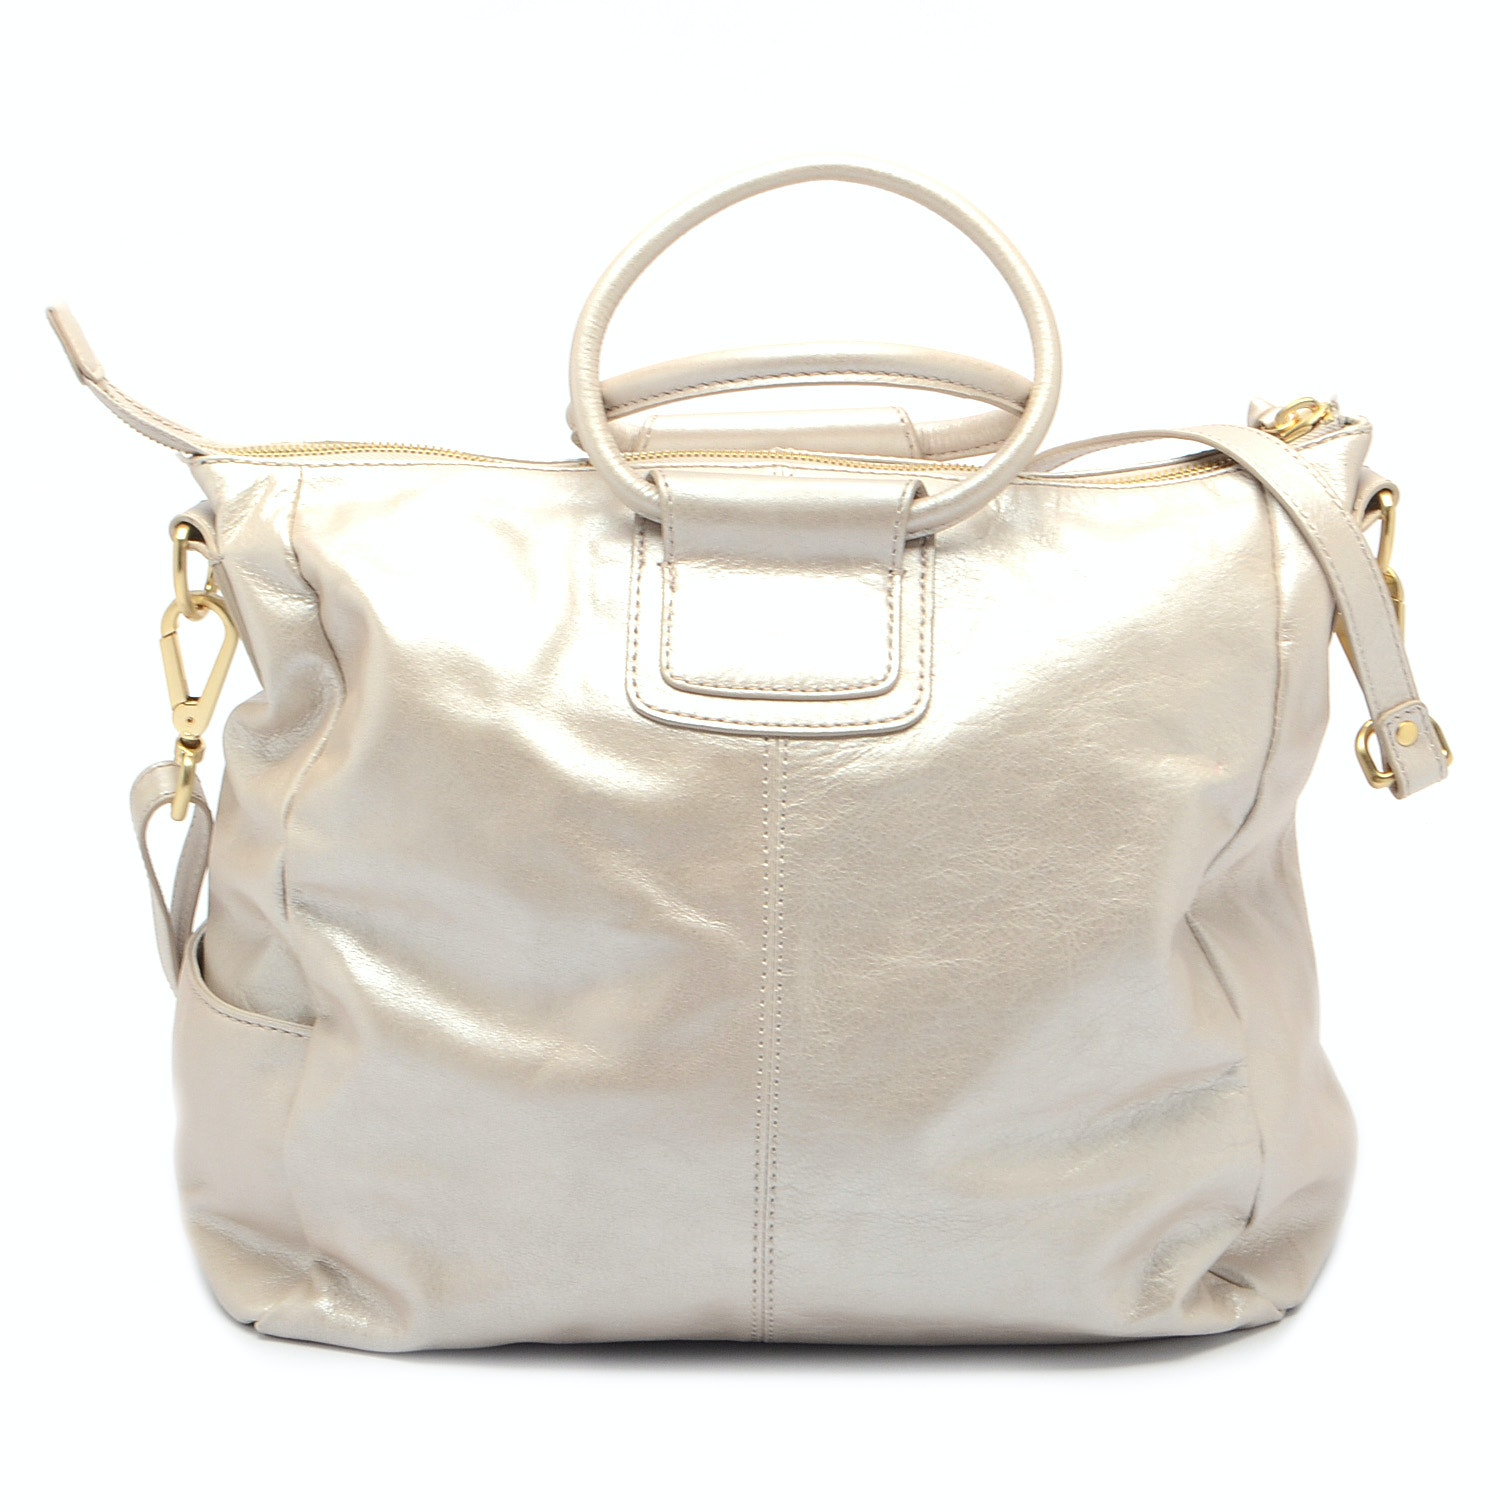 Metallic Leather Handbag by Hobo